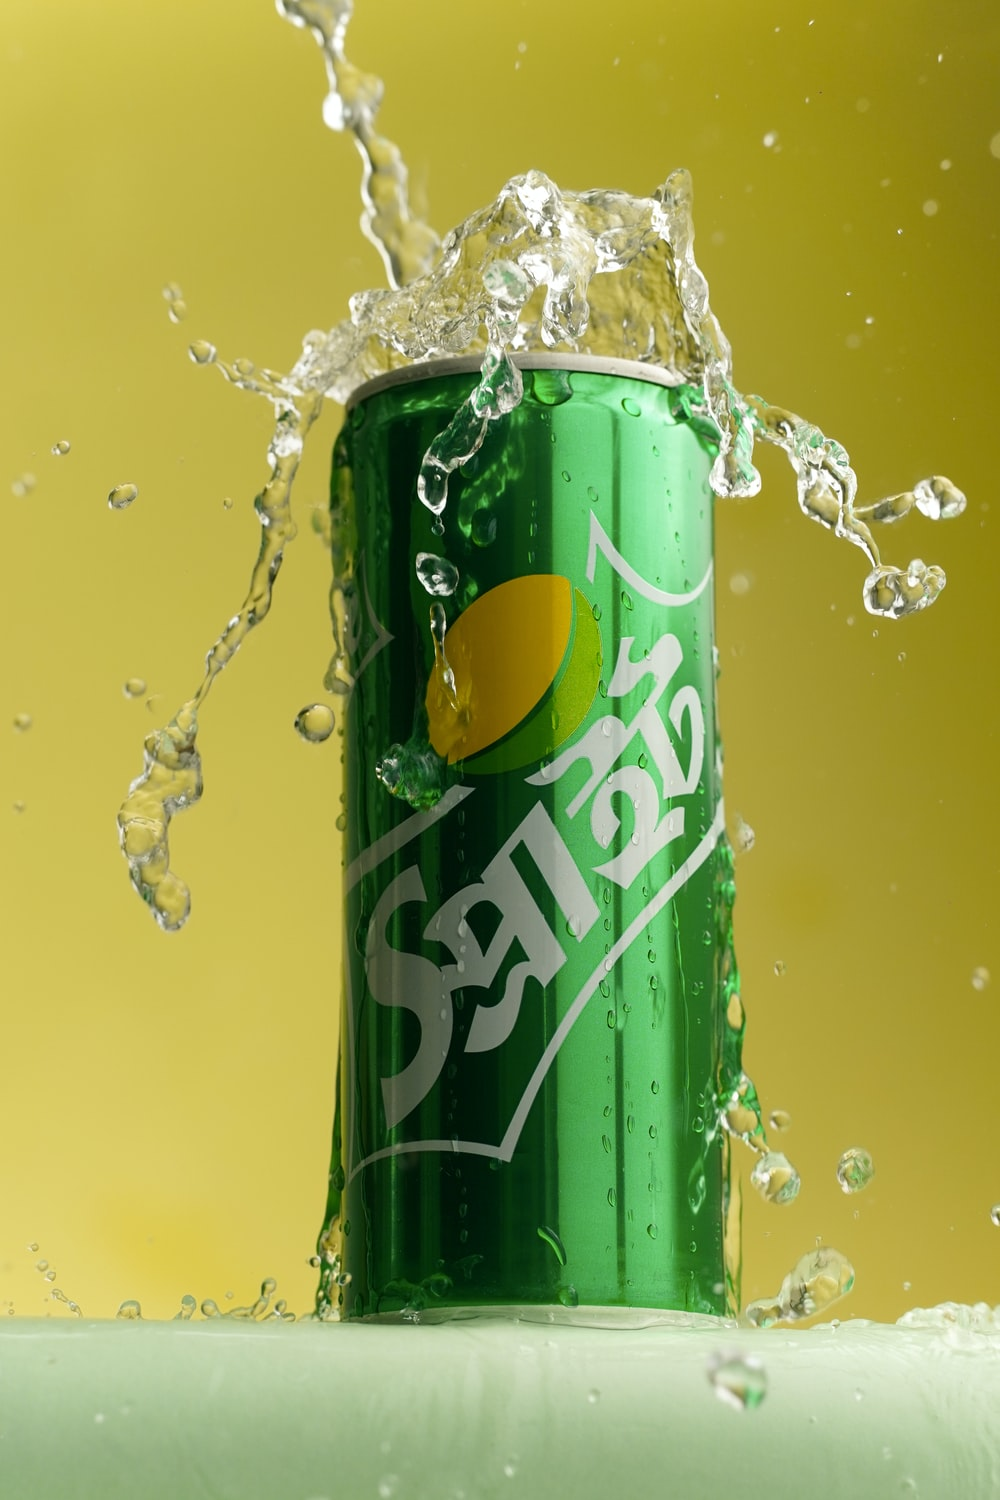 green and yellow pepsi can